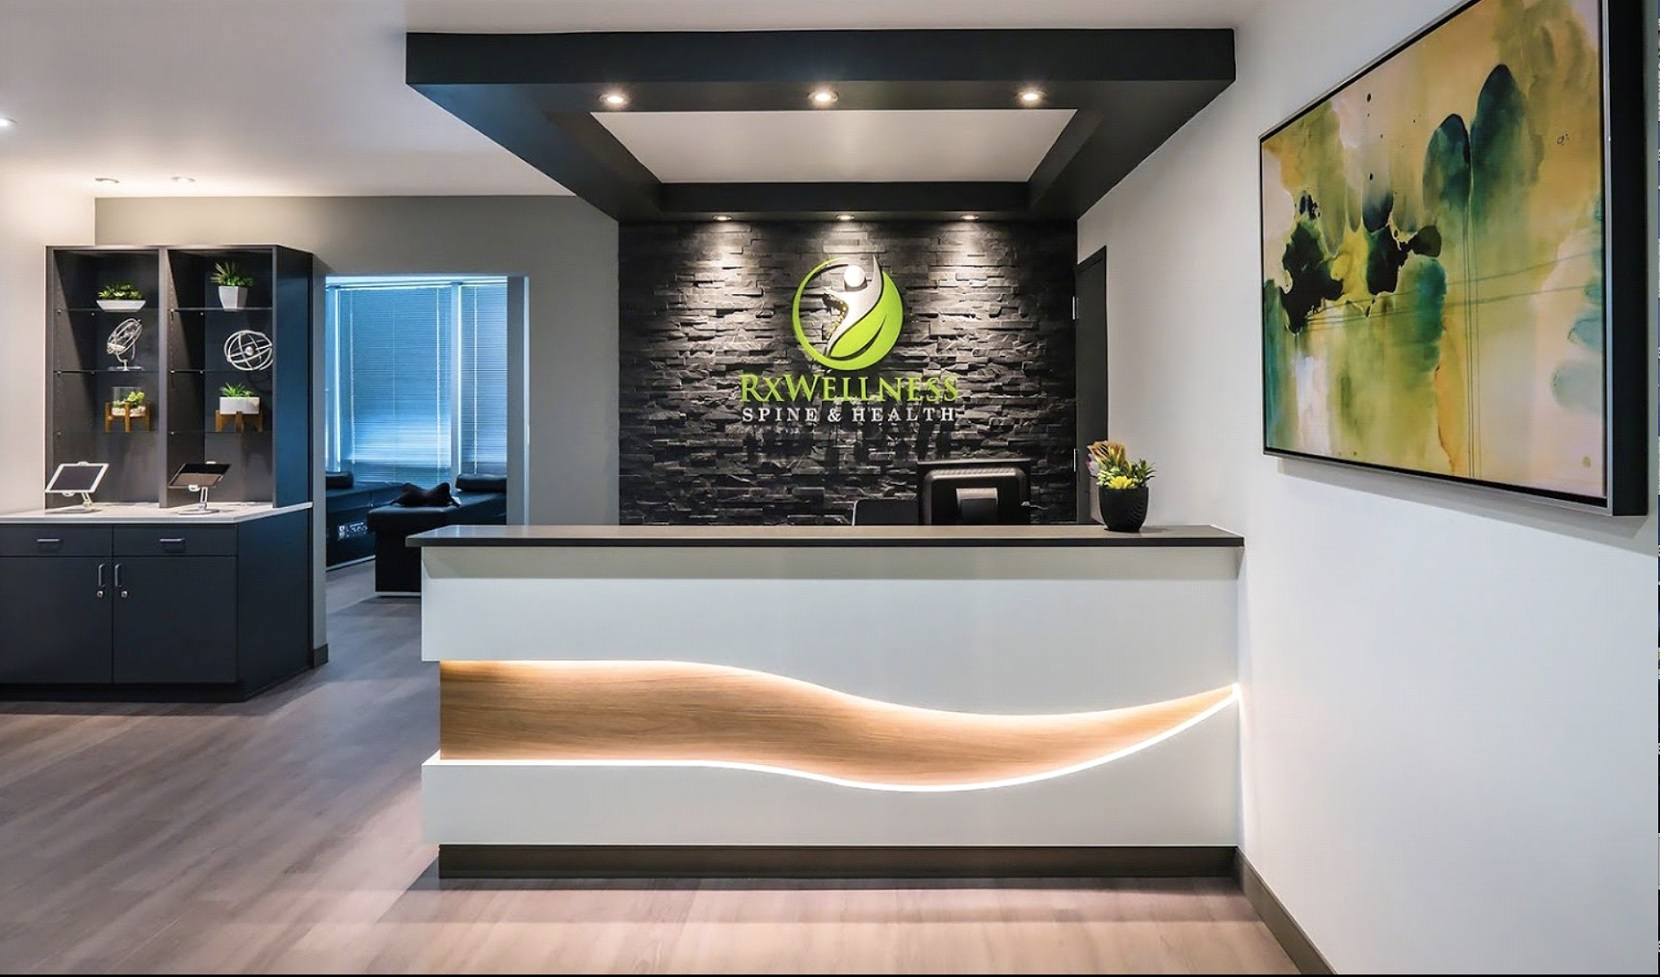 Rxwellness Office